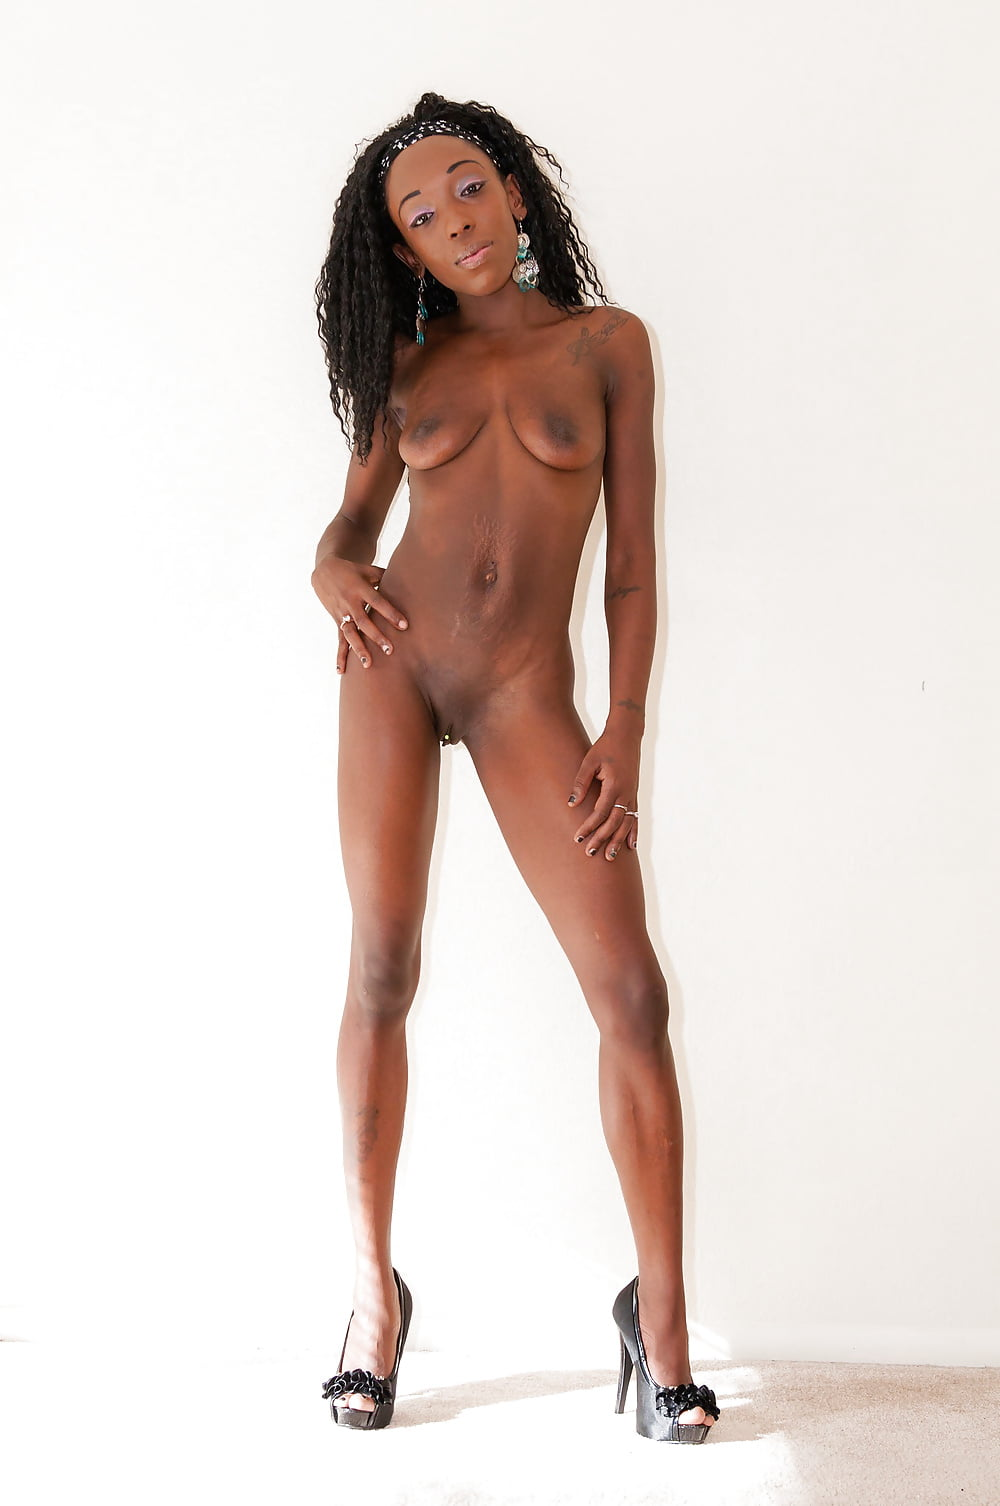 Black slim smile nude girl